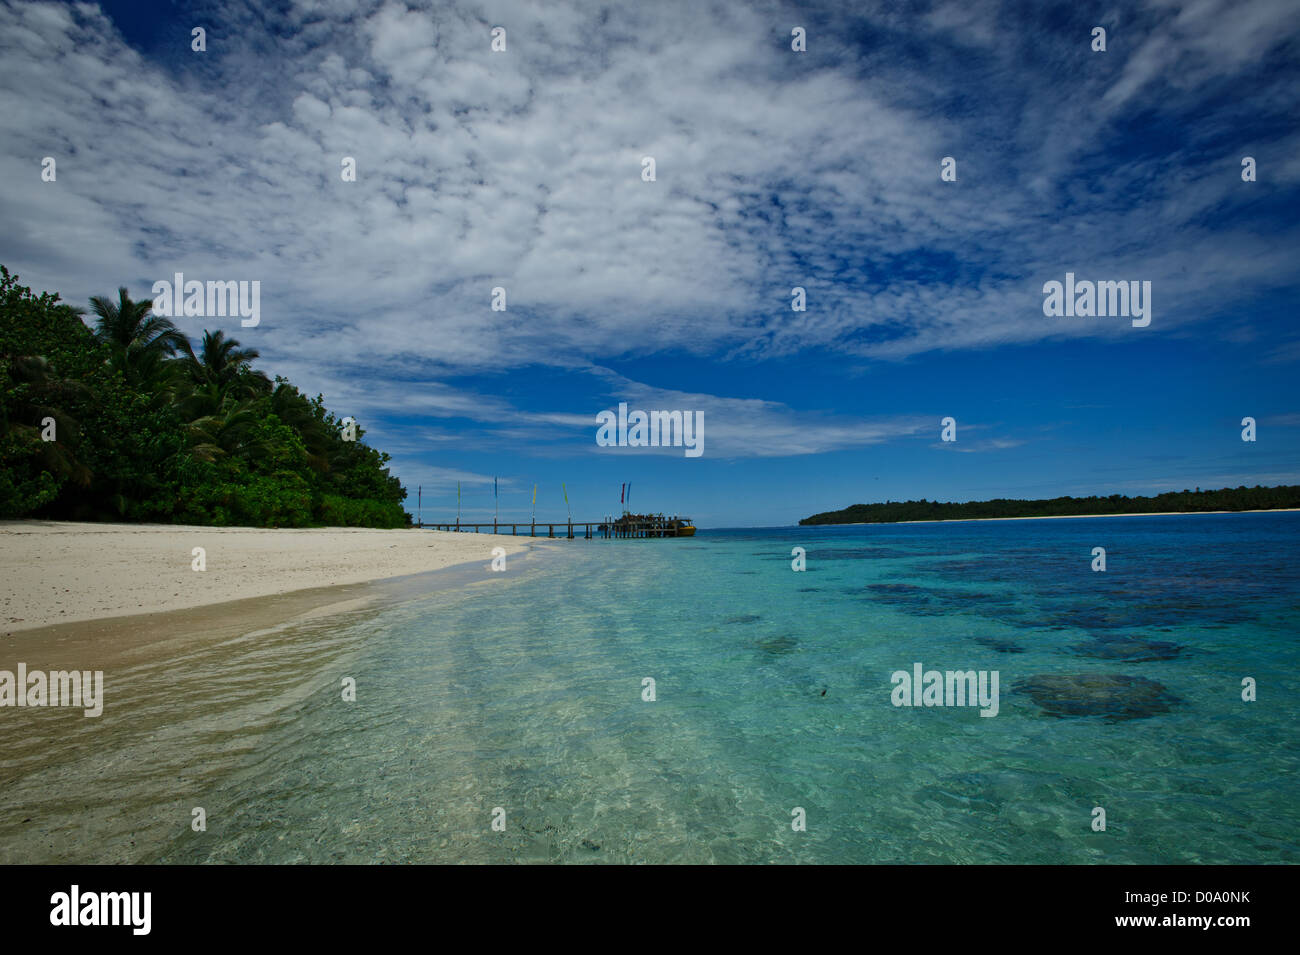 The white sand beach of Aloita island in the Mentawai, West Sumatra, Indonesia. A gem in the Indian Ocean - Stock Image